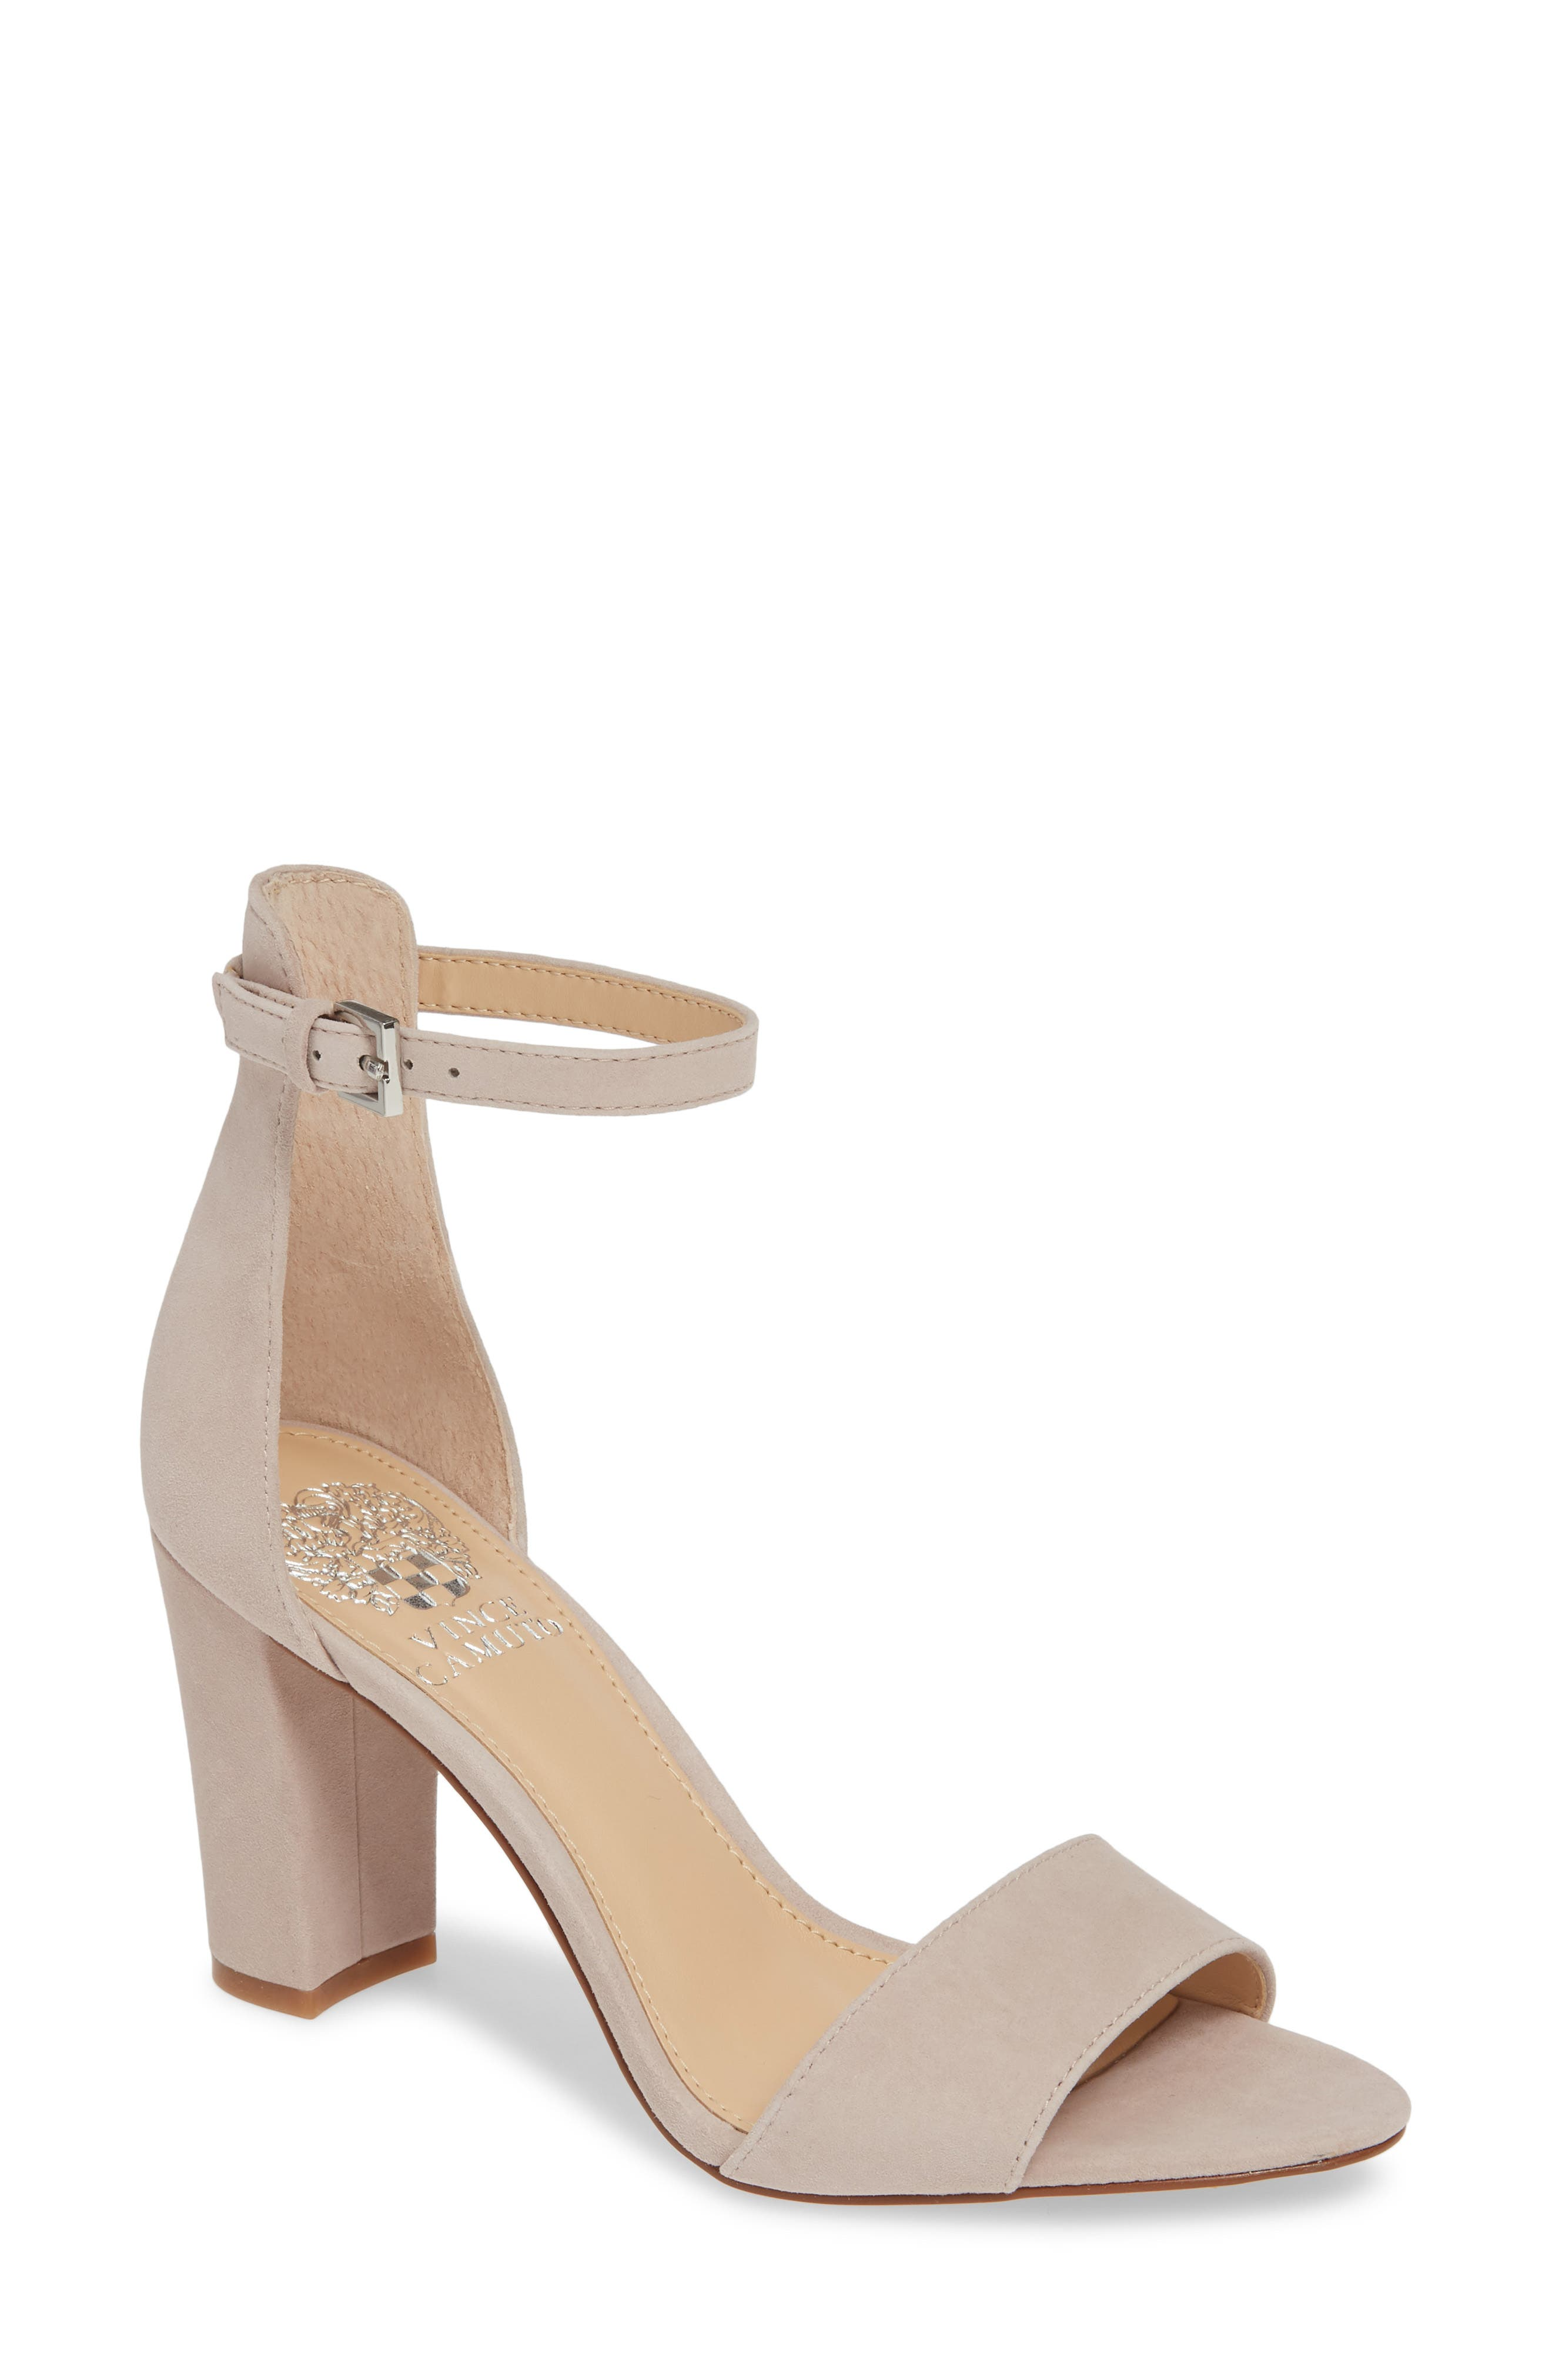 dd407403997 Vince Camuto Sandals for Women